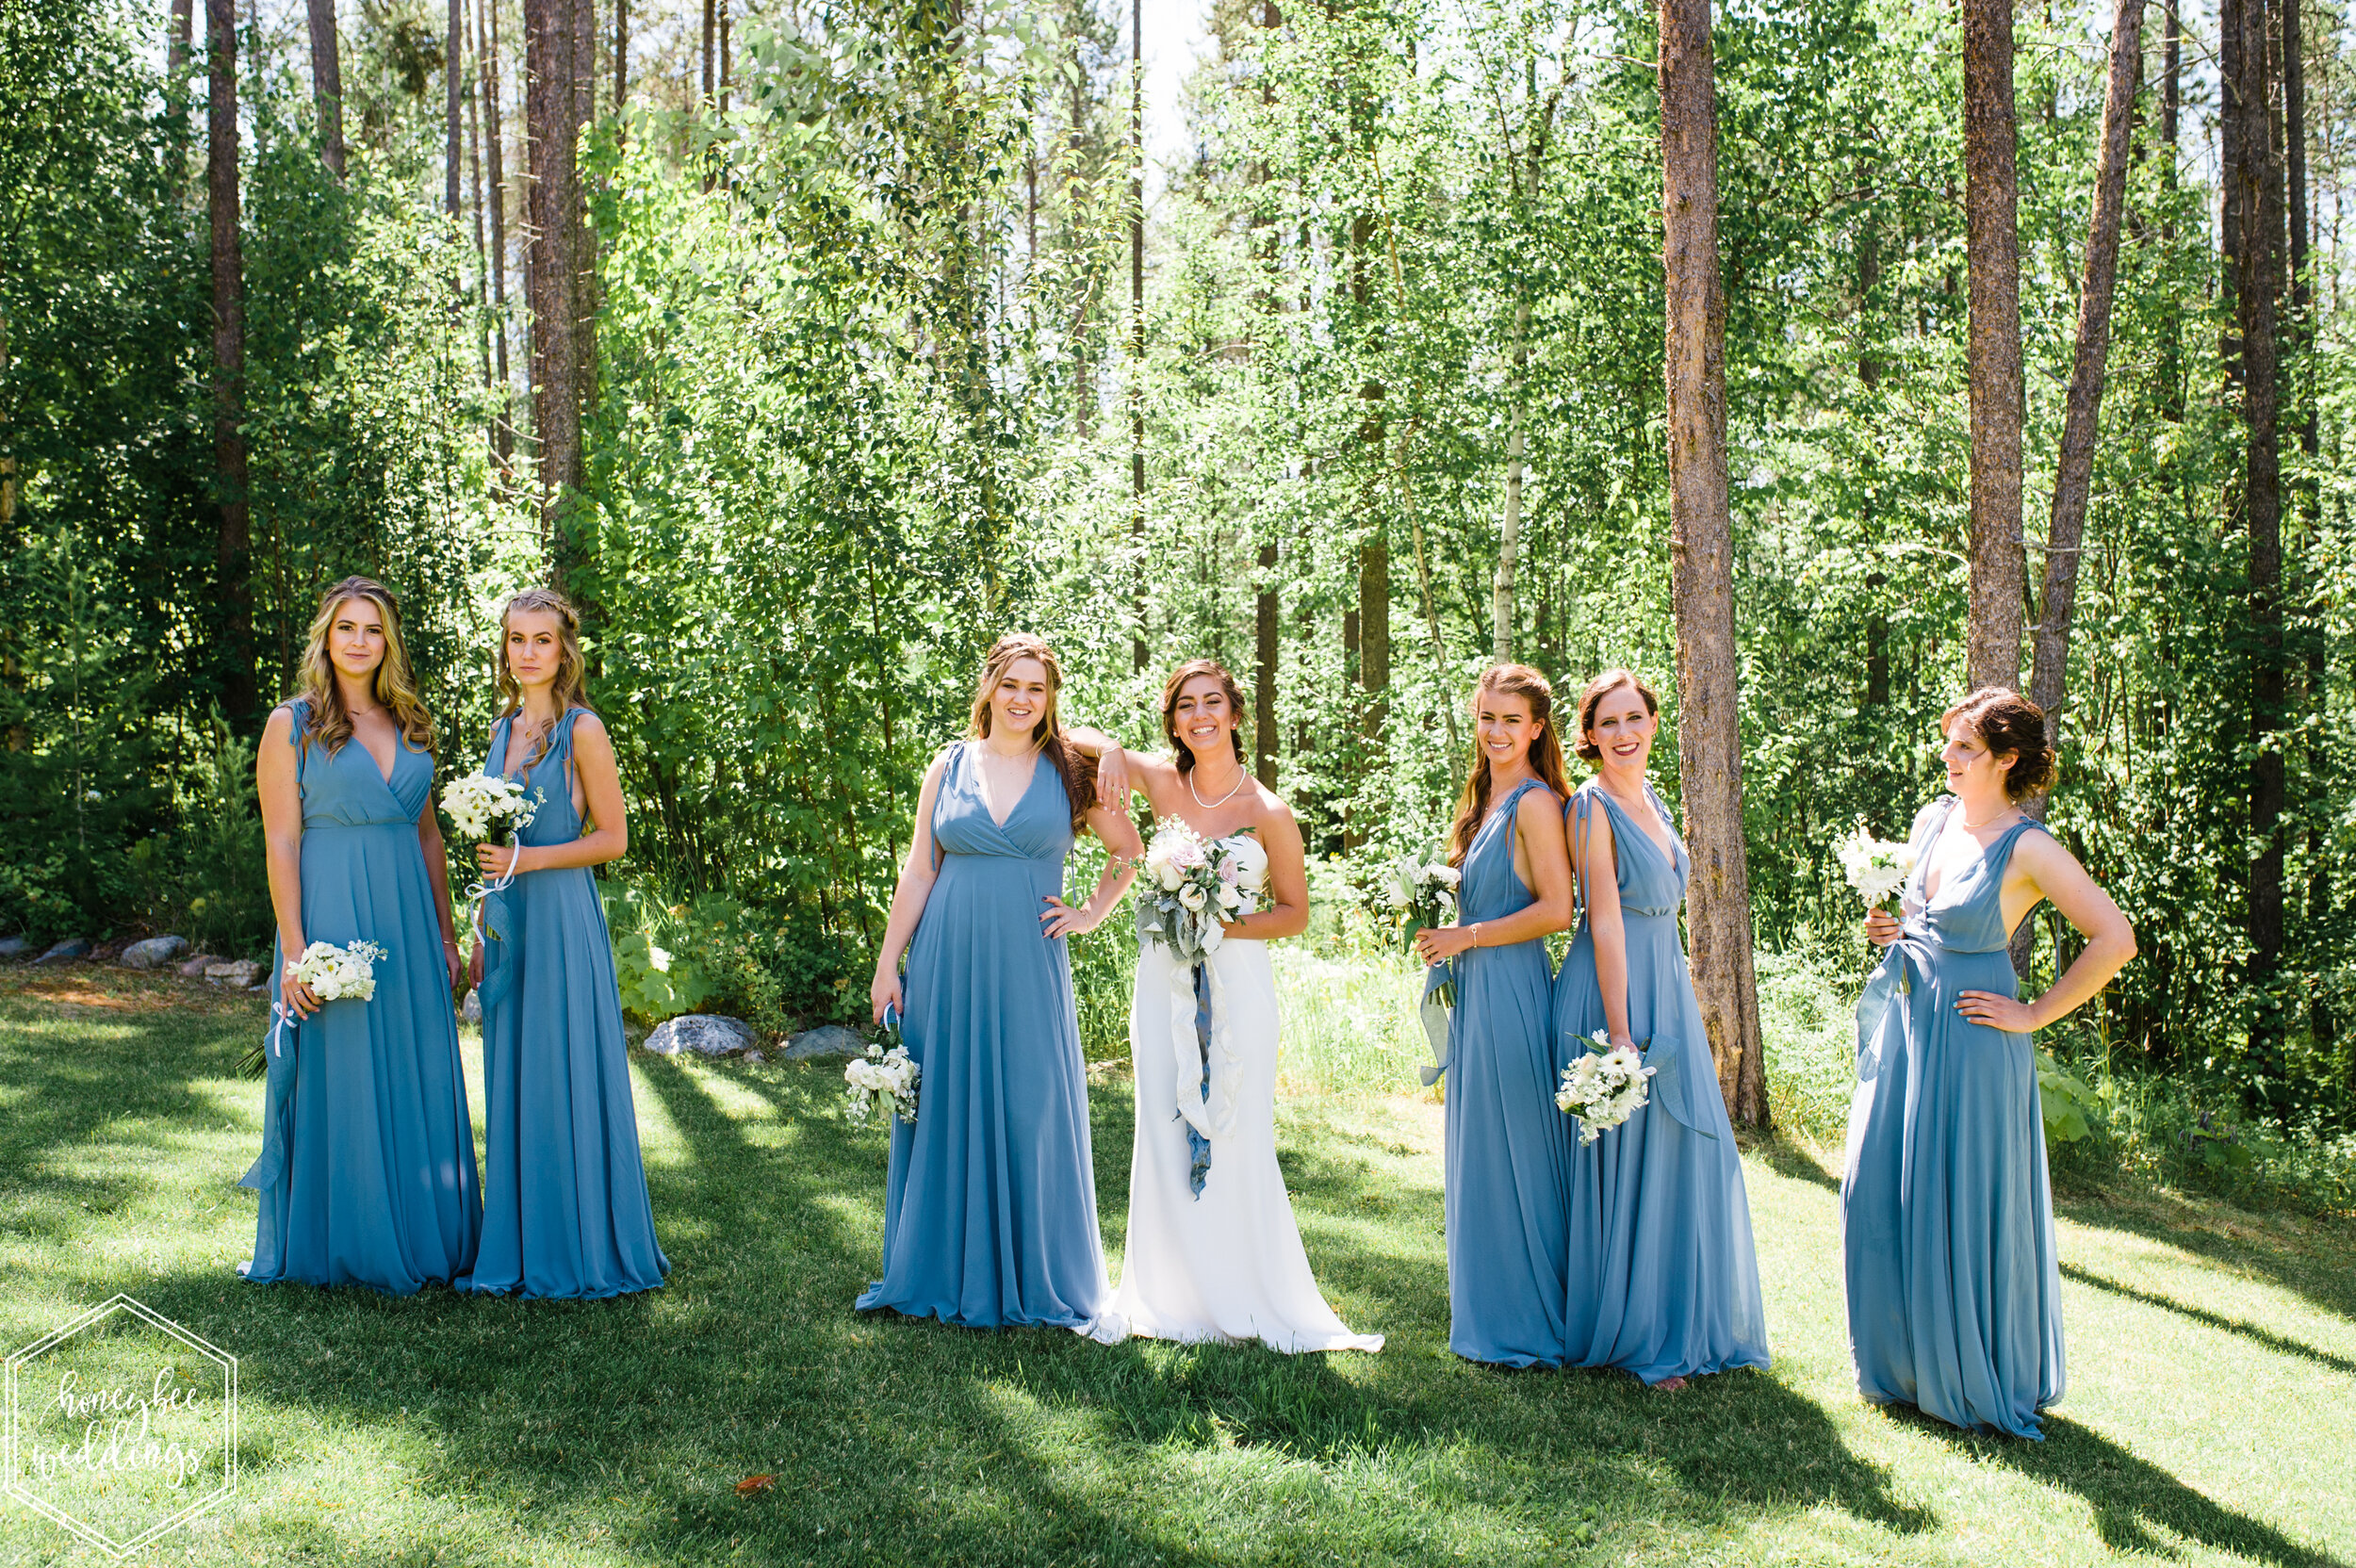 060Glacier National Park Wedding_Glacier Outdoor Center_Honeybee Weddings_Anna & Seth_July 21, 2019-1939.jpg